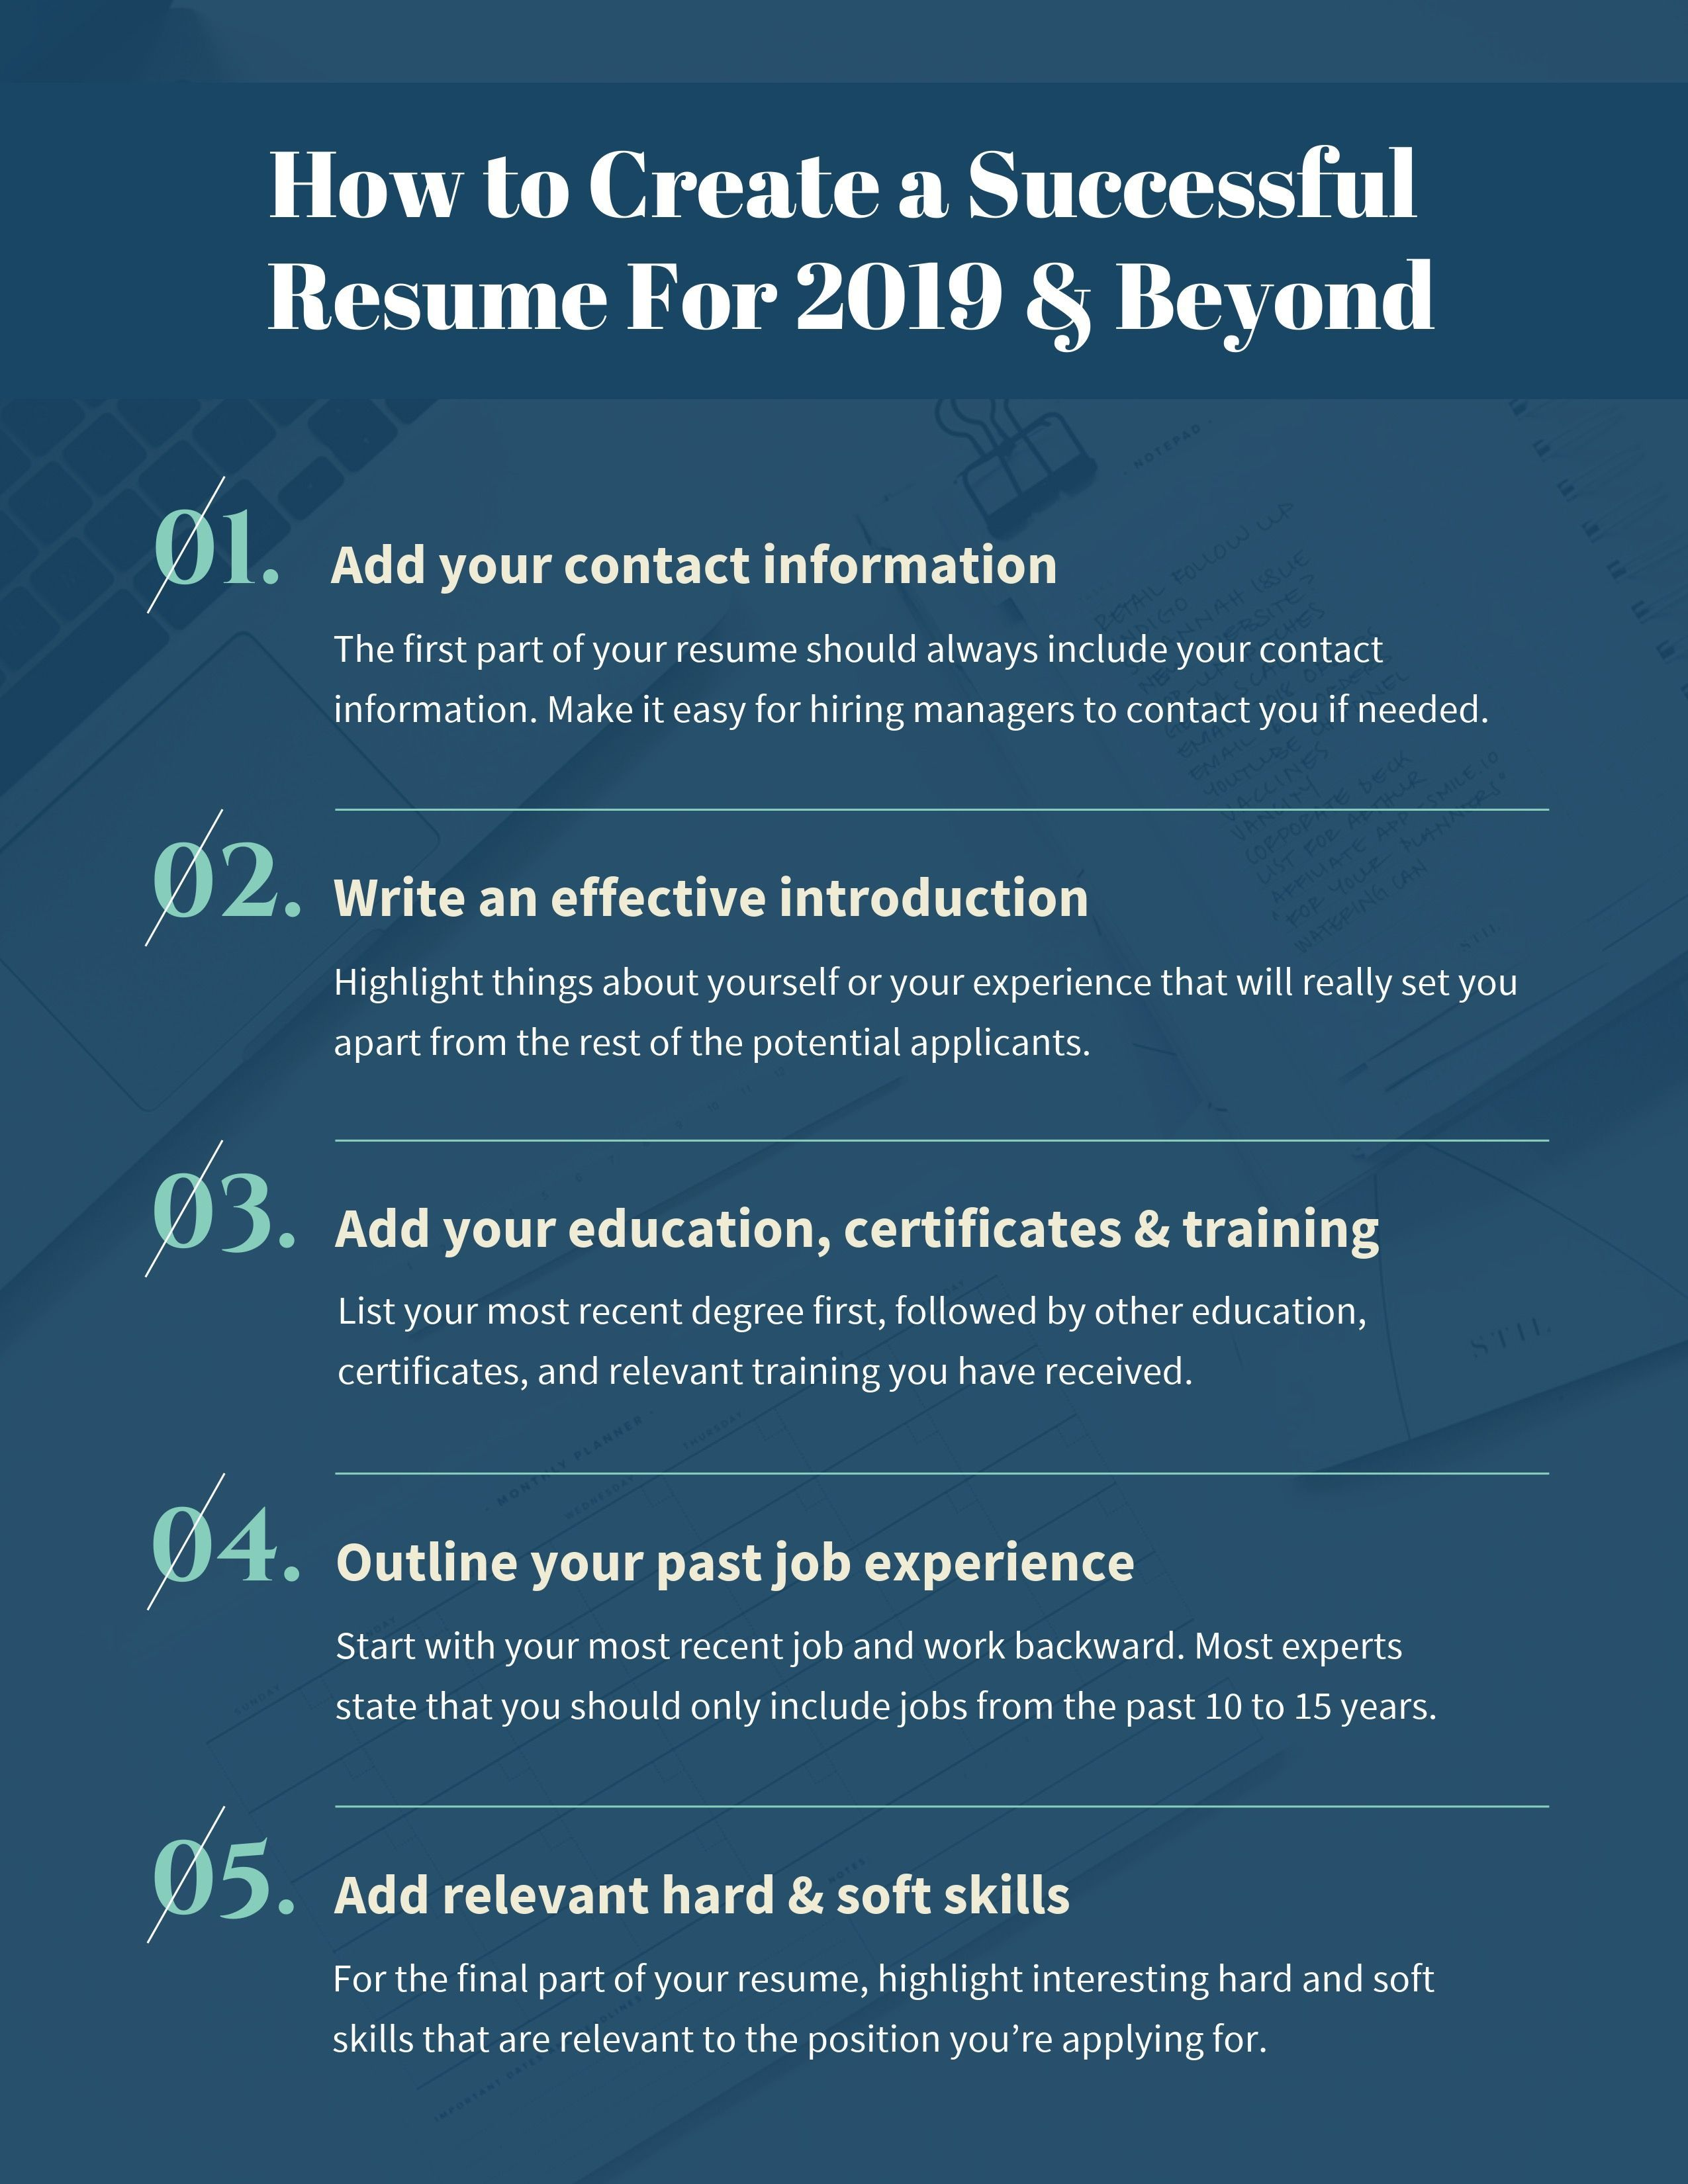 15 Resume Design Tips Templates Examples A Resume Is A Document That Summarizes Your Work Experience Educati Resume Examples Resume Tips Resume Design